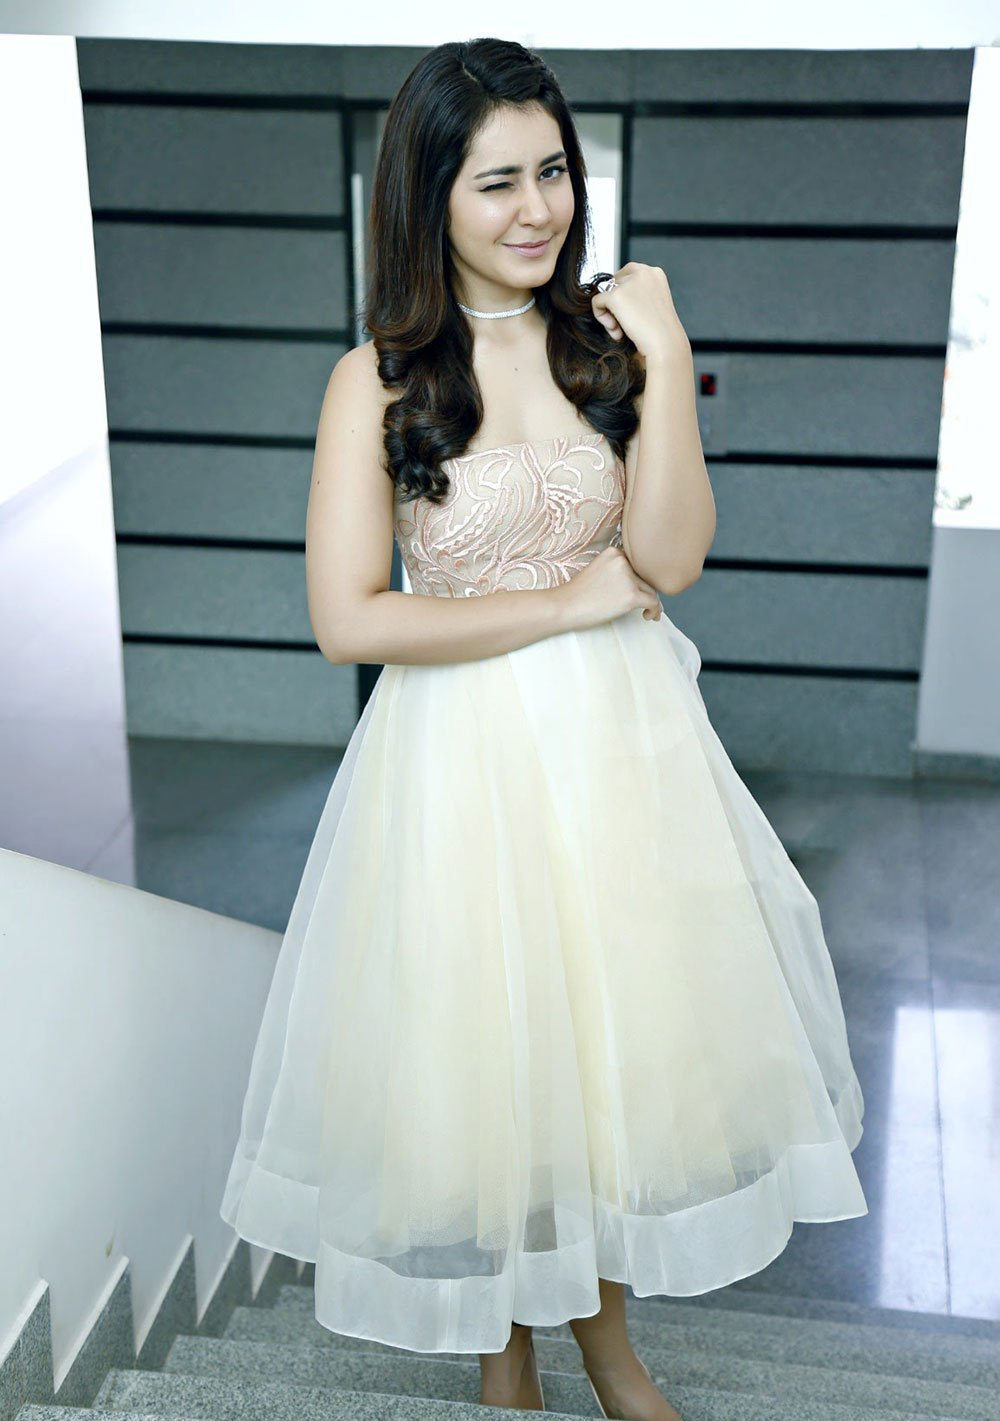 Rashi Khanna Long Hair Photo Shoot In  White Mini Skirt